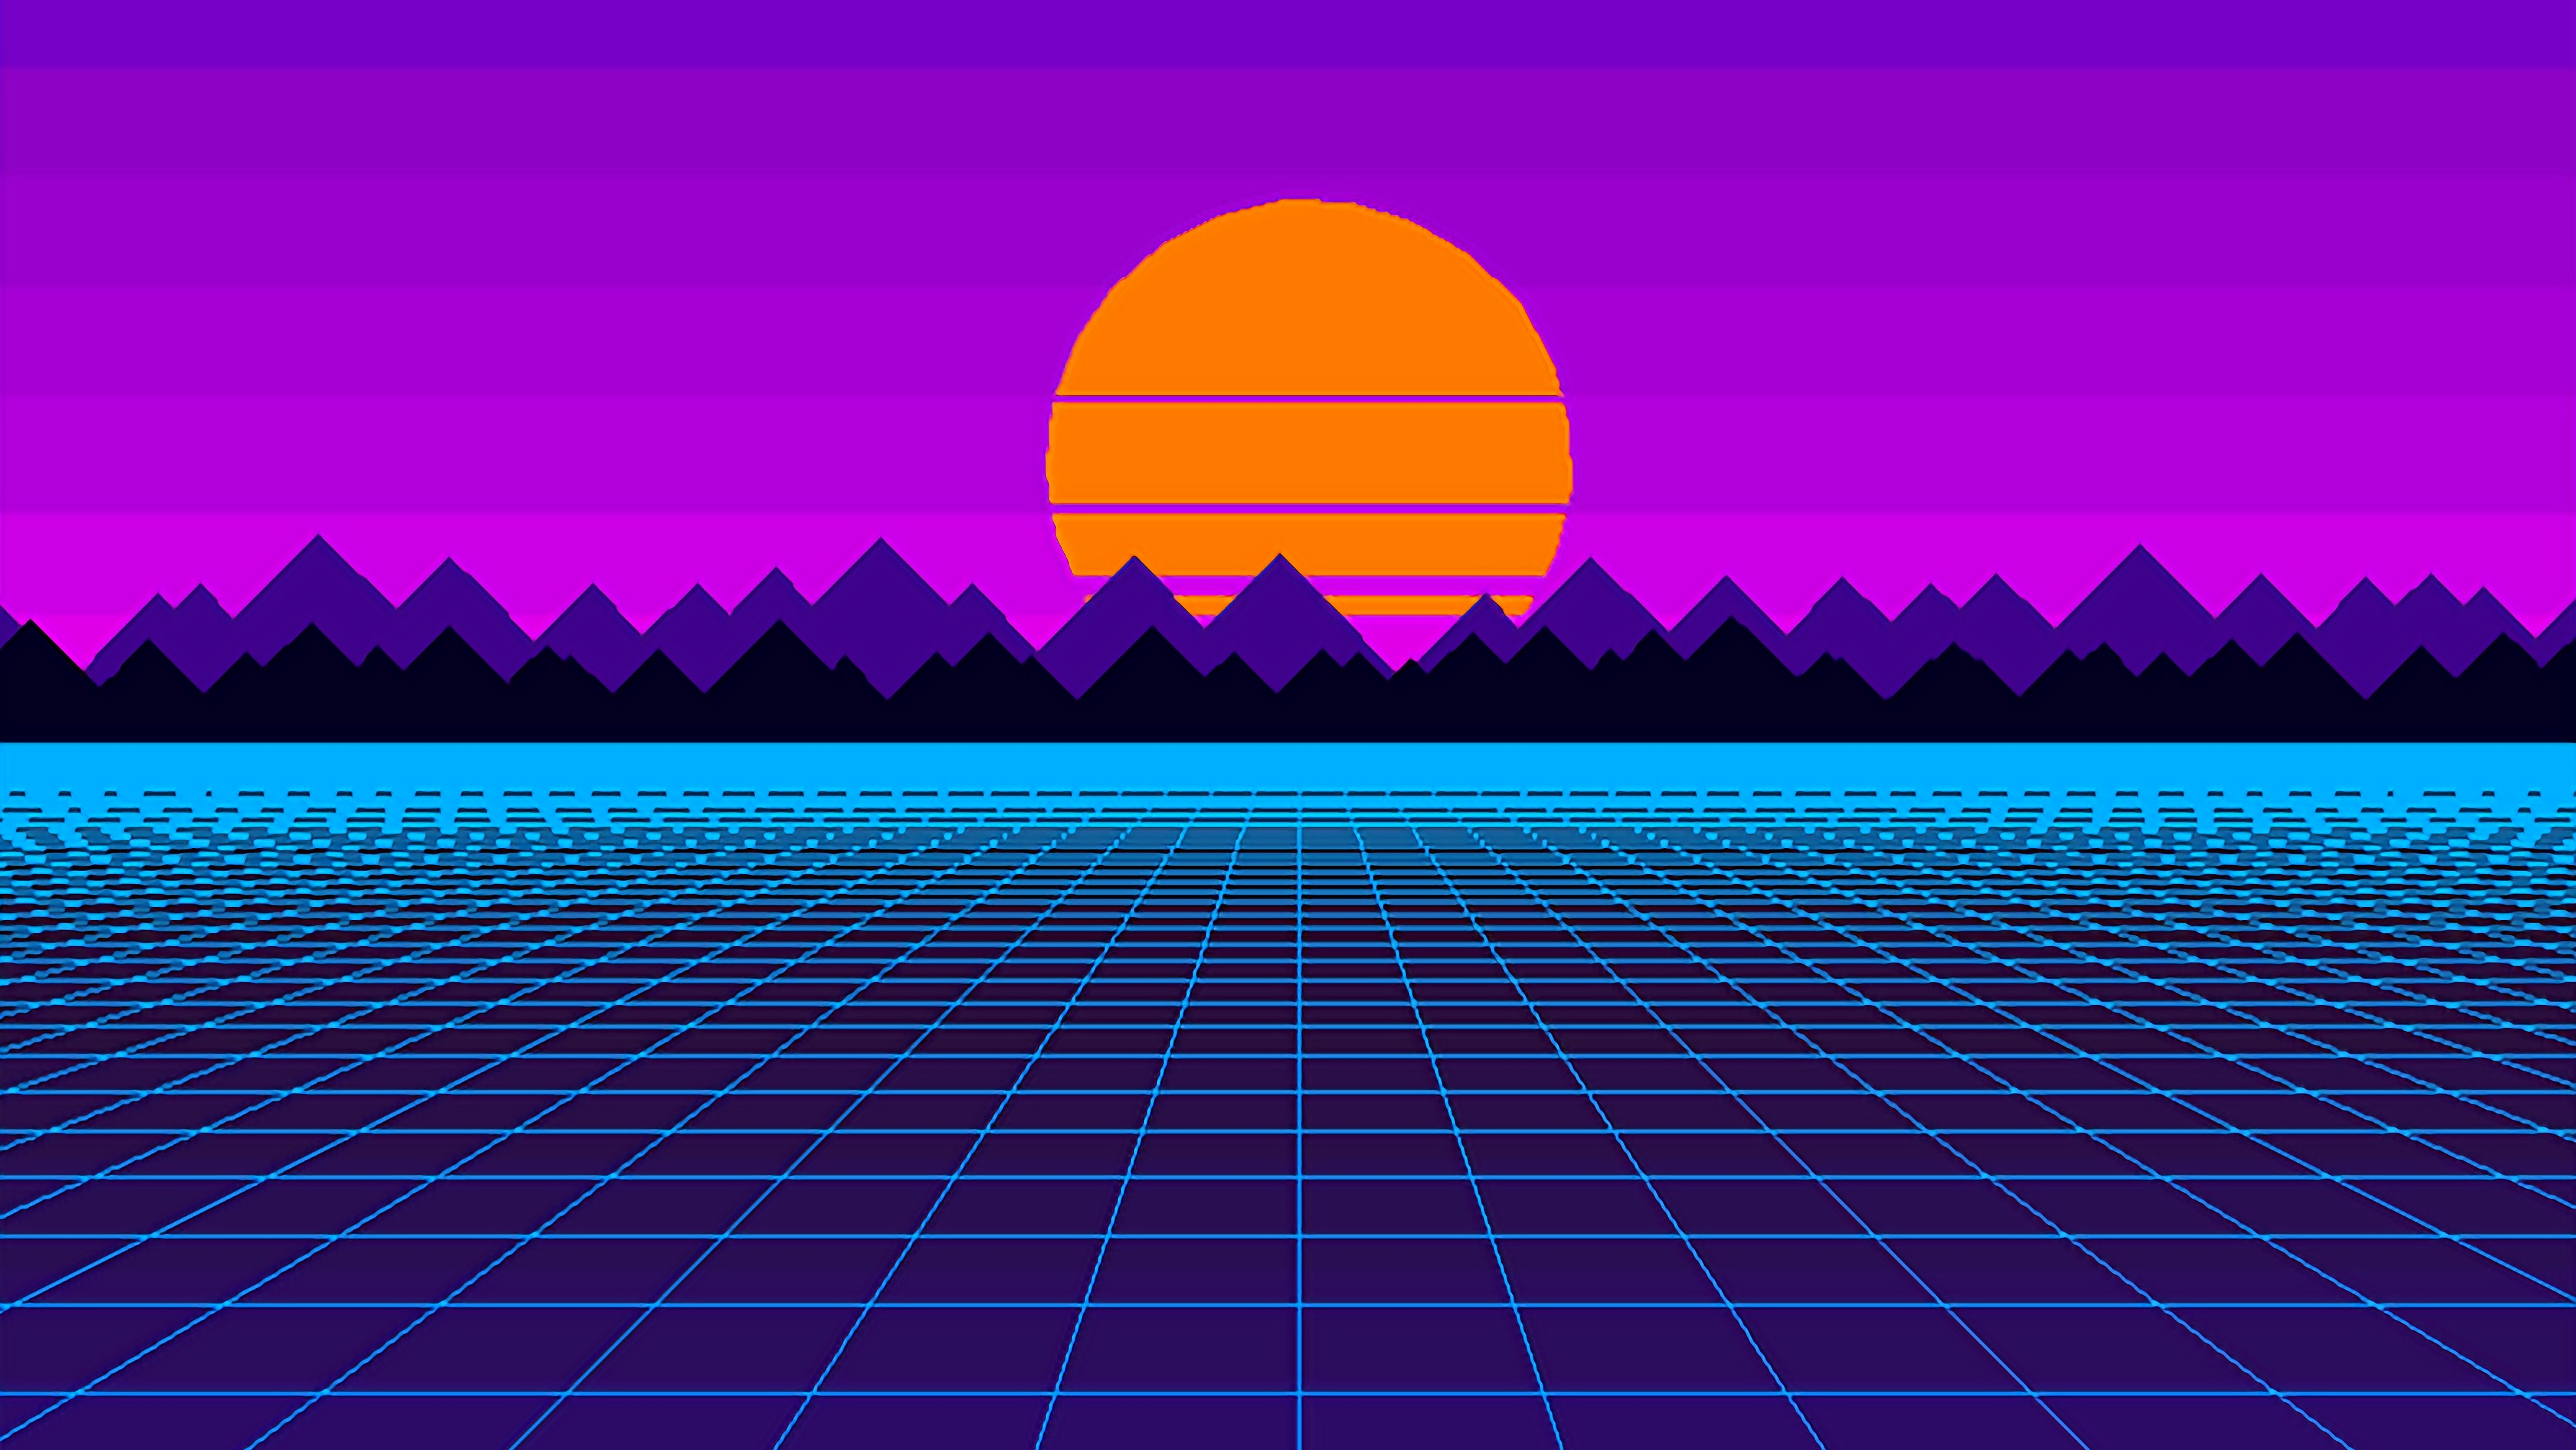 Outrun Wallpapers 4k For Your Phone And Desktop Screen